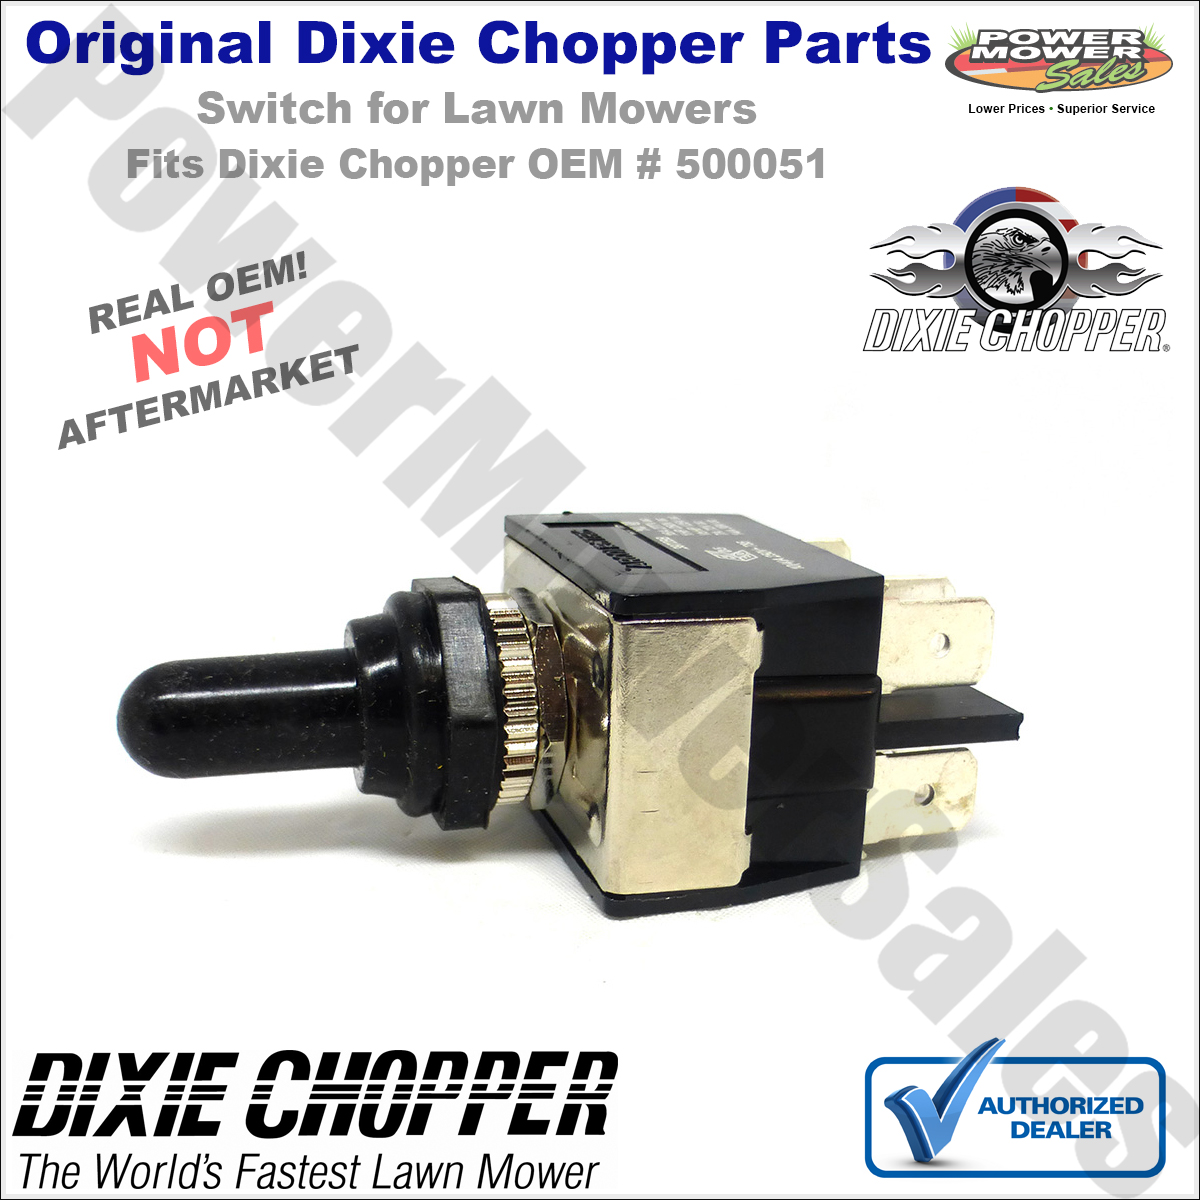 hight resolution of dixie chopper deck lift wiring harness switch w boot for classic 2250 classic 2750 lawn mowers 500051